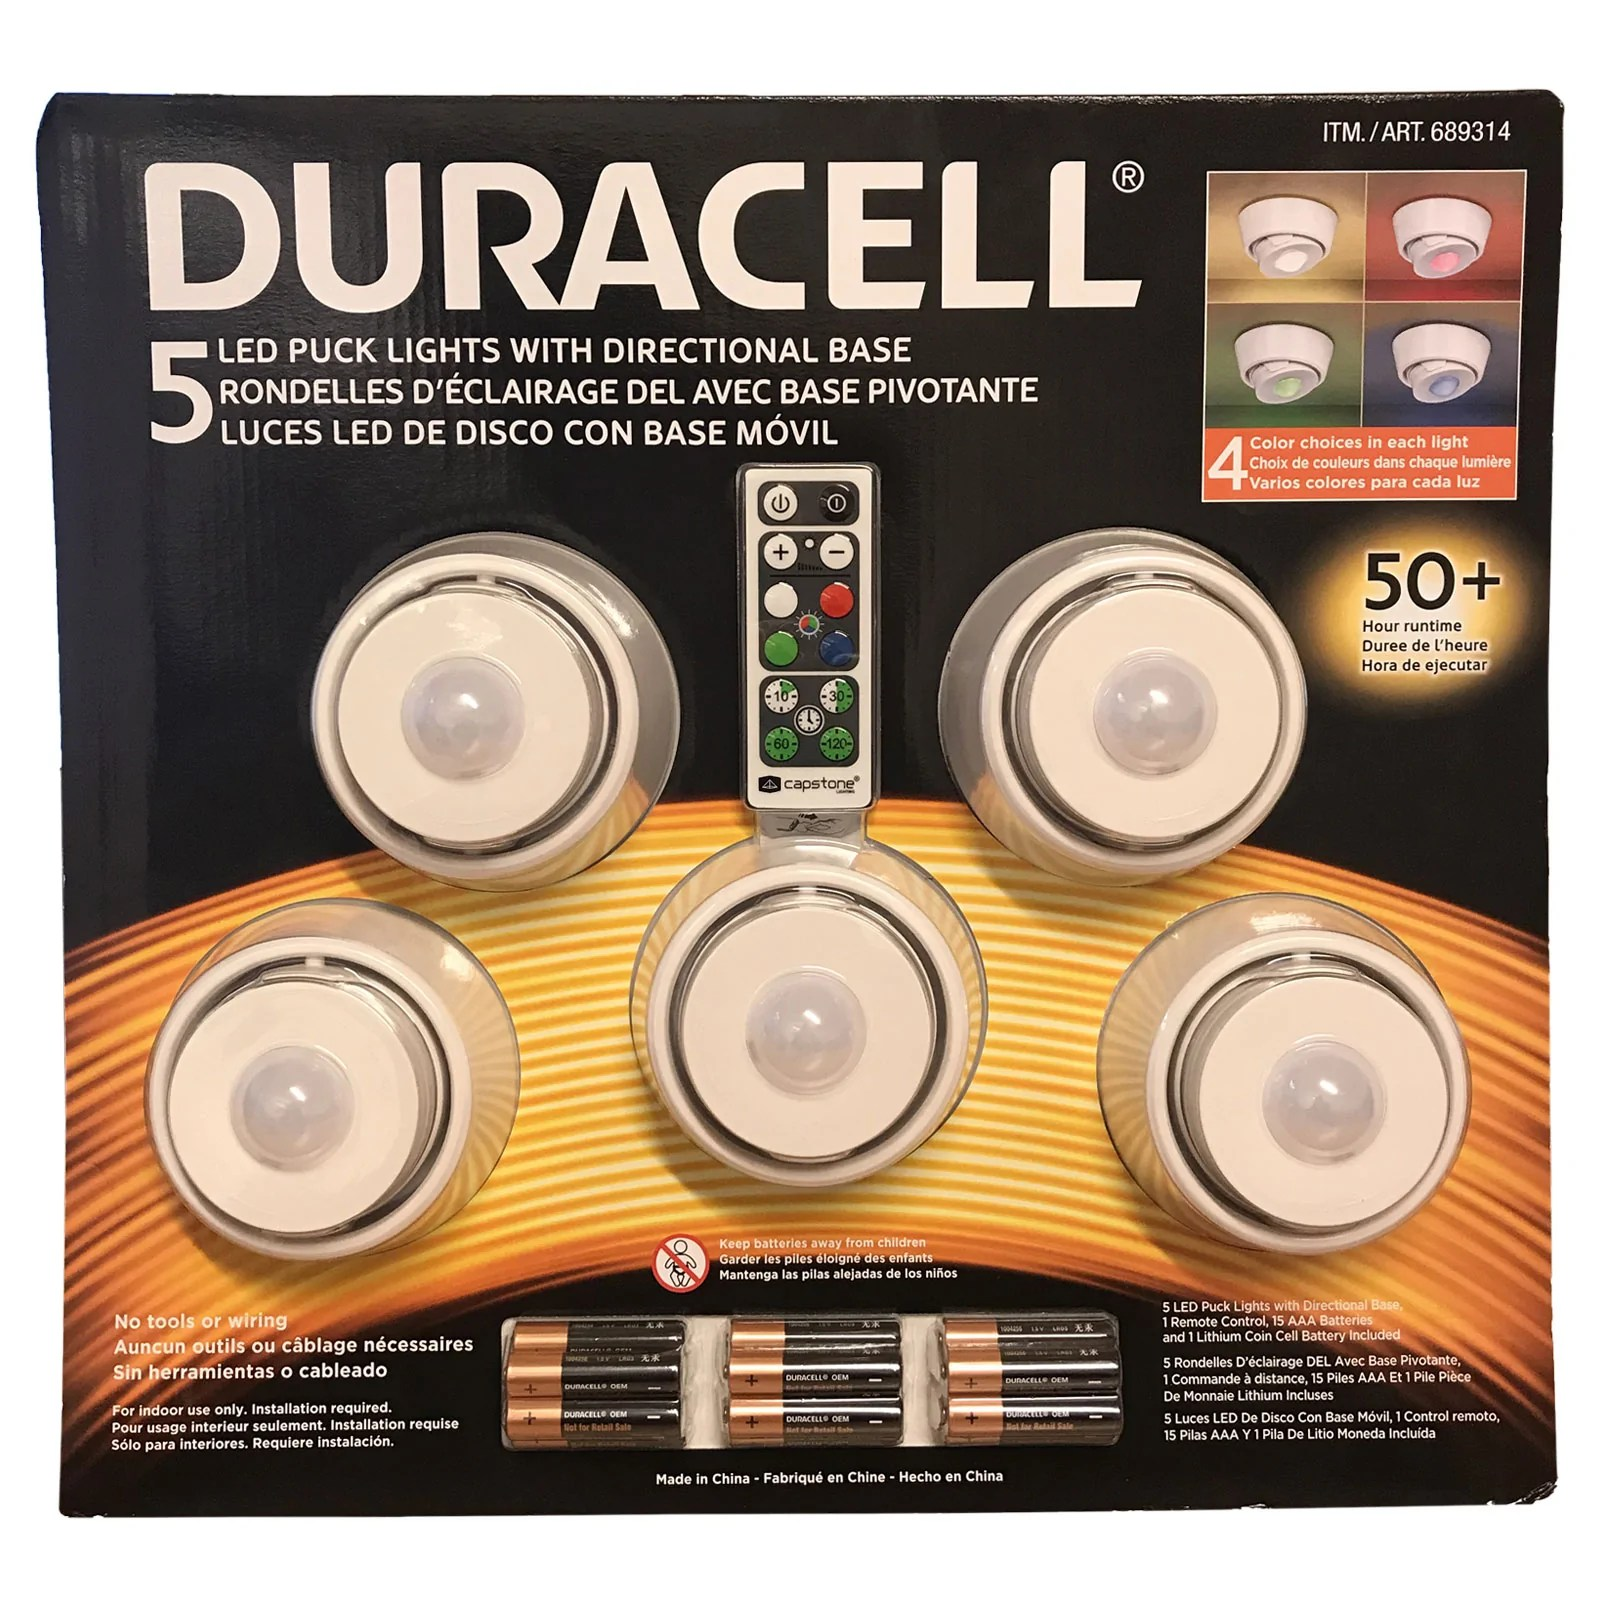 duracell capstone 5 led puck lights directional base remote control 4 colours